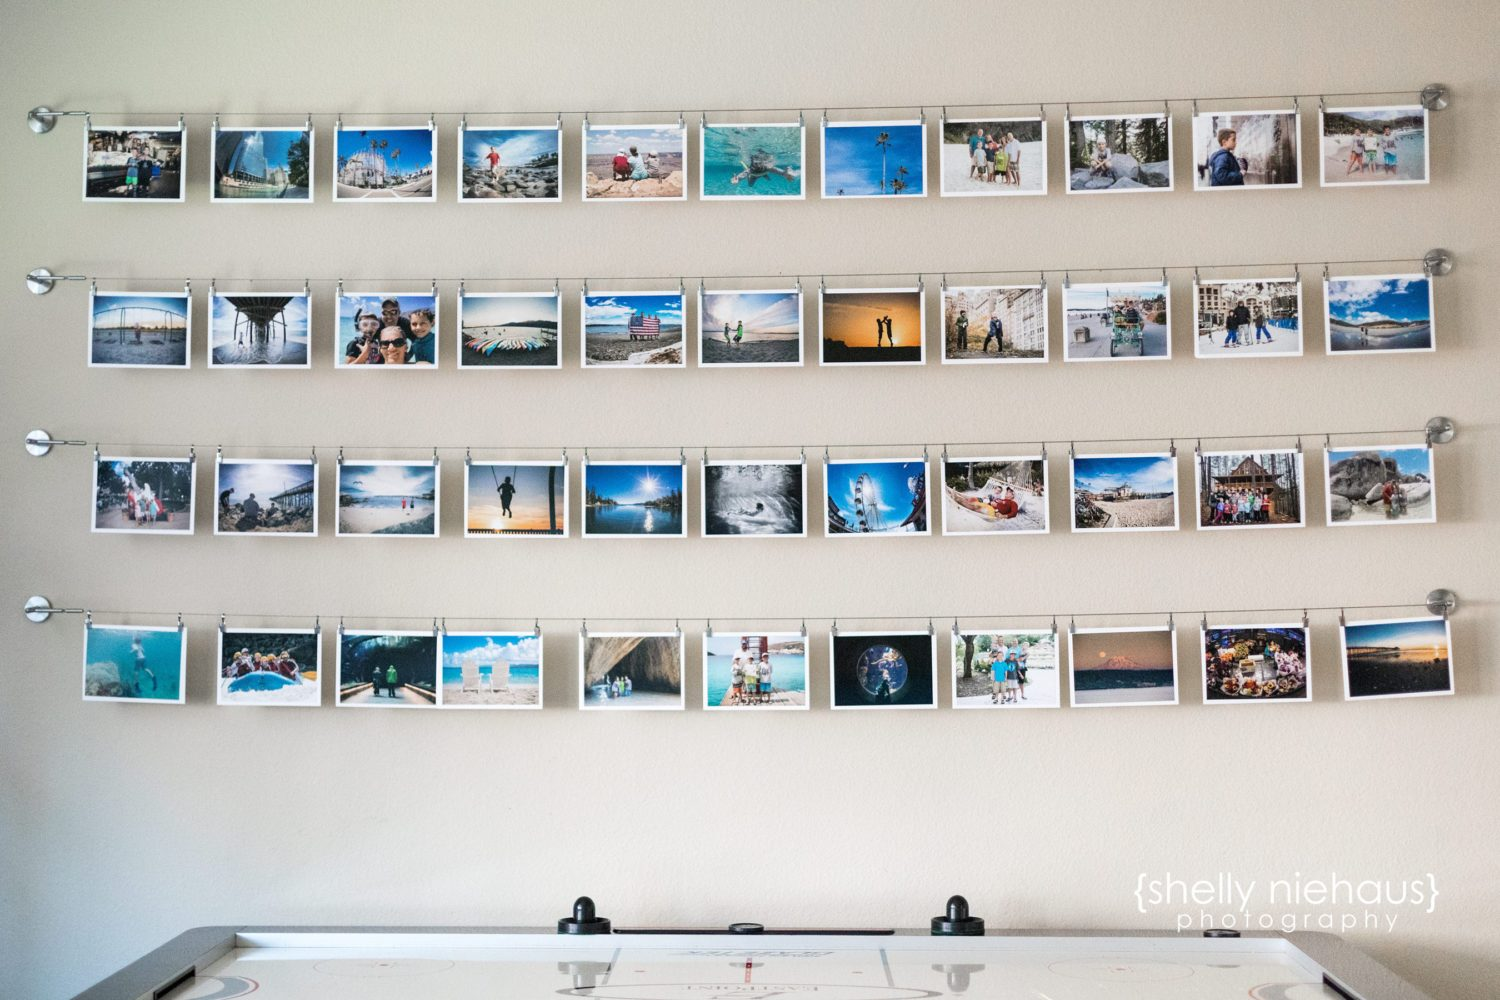 Shelly Niehaus Photography| Dallas Family Photography| Family Photo Books and Wall Display